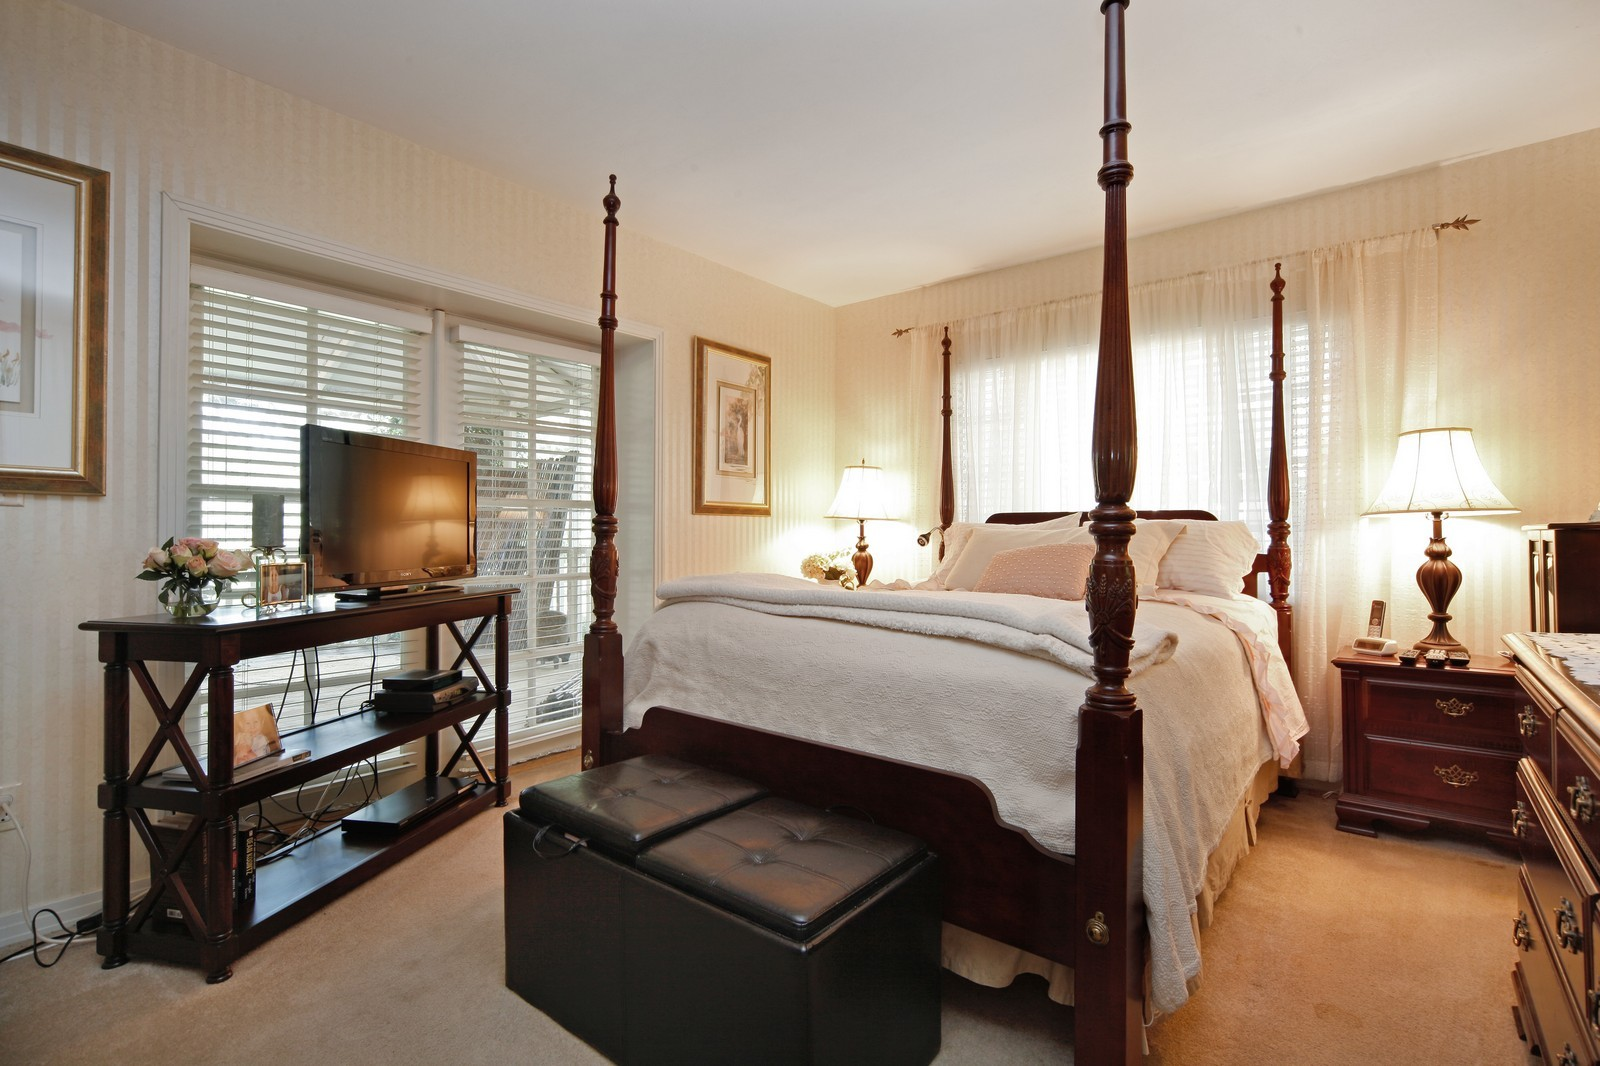 Real Estate Photography - 2621 N Dundee St, Tampa, FL, 33629 - Master Bedroom